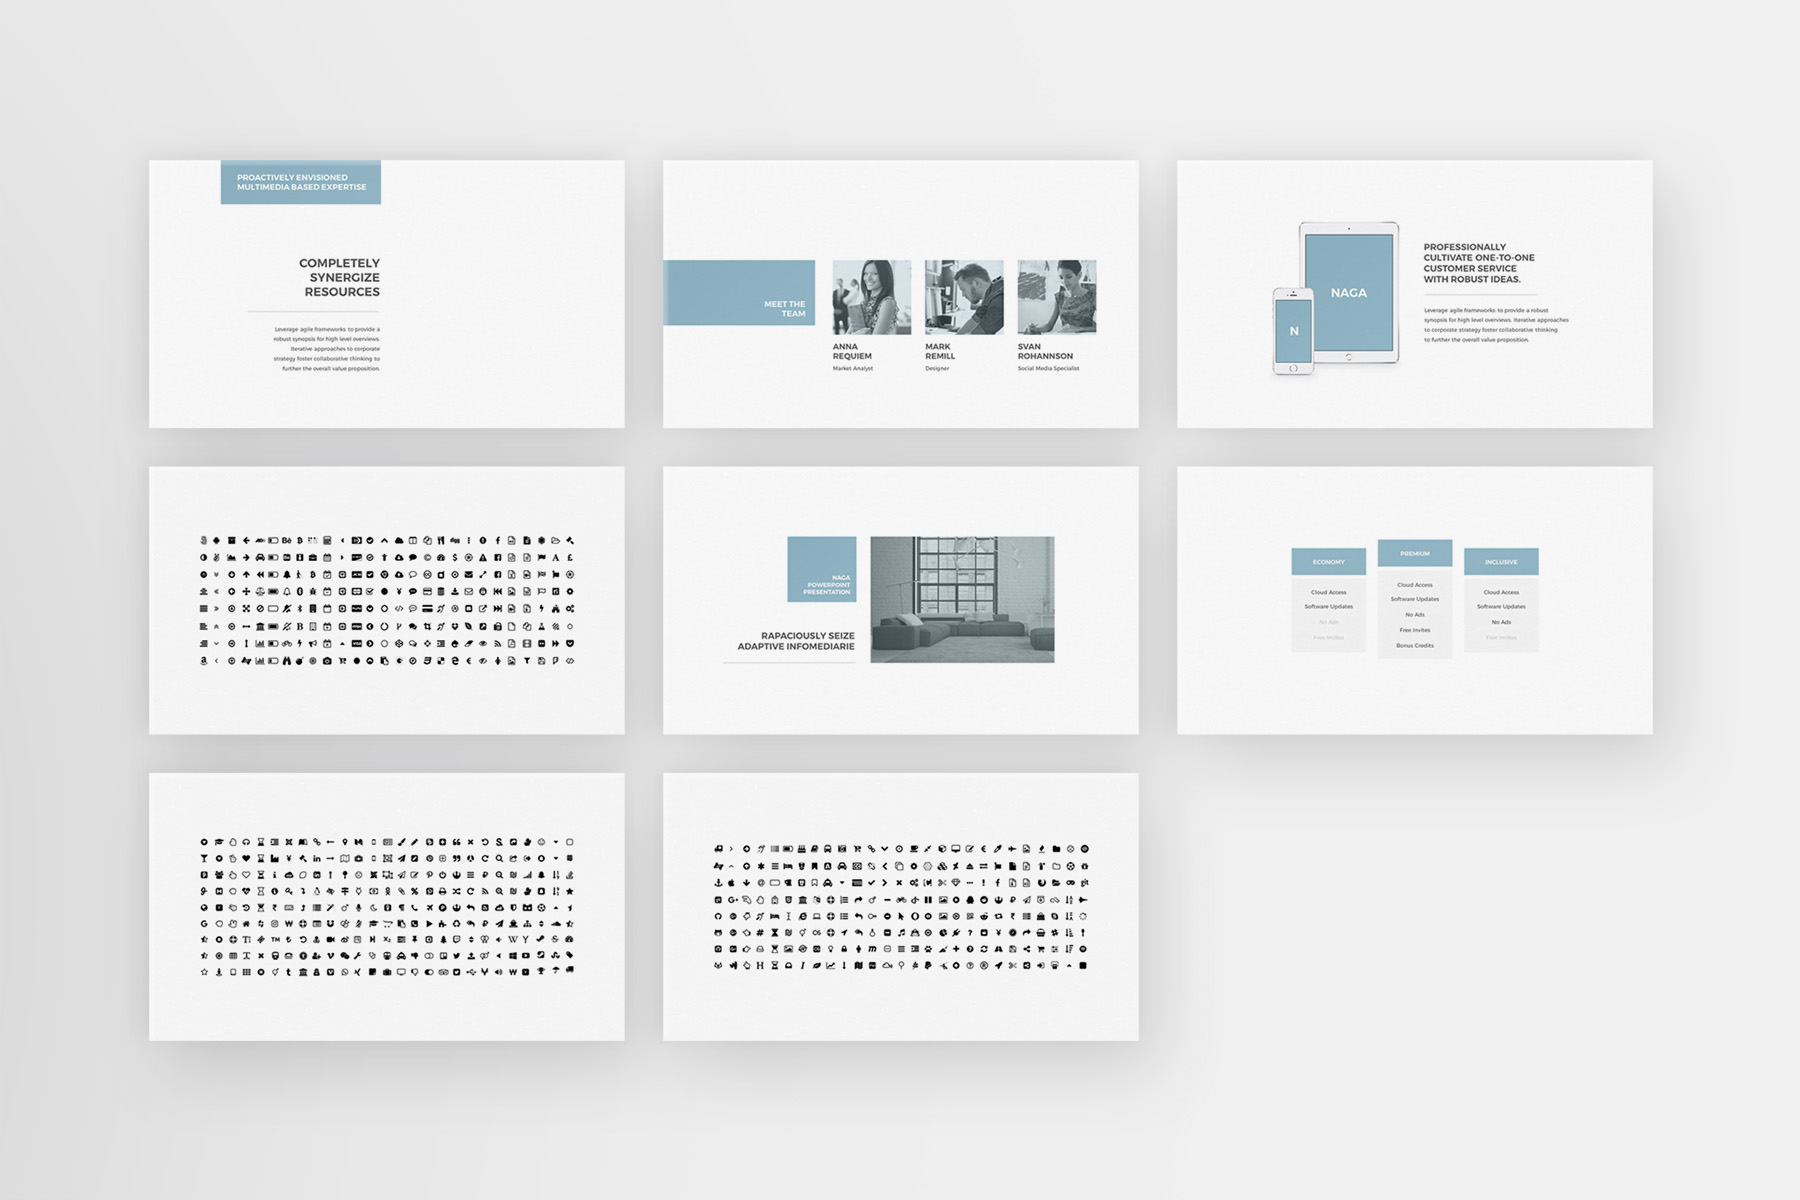 Naga - PowerPoint Template example image 7